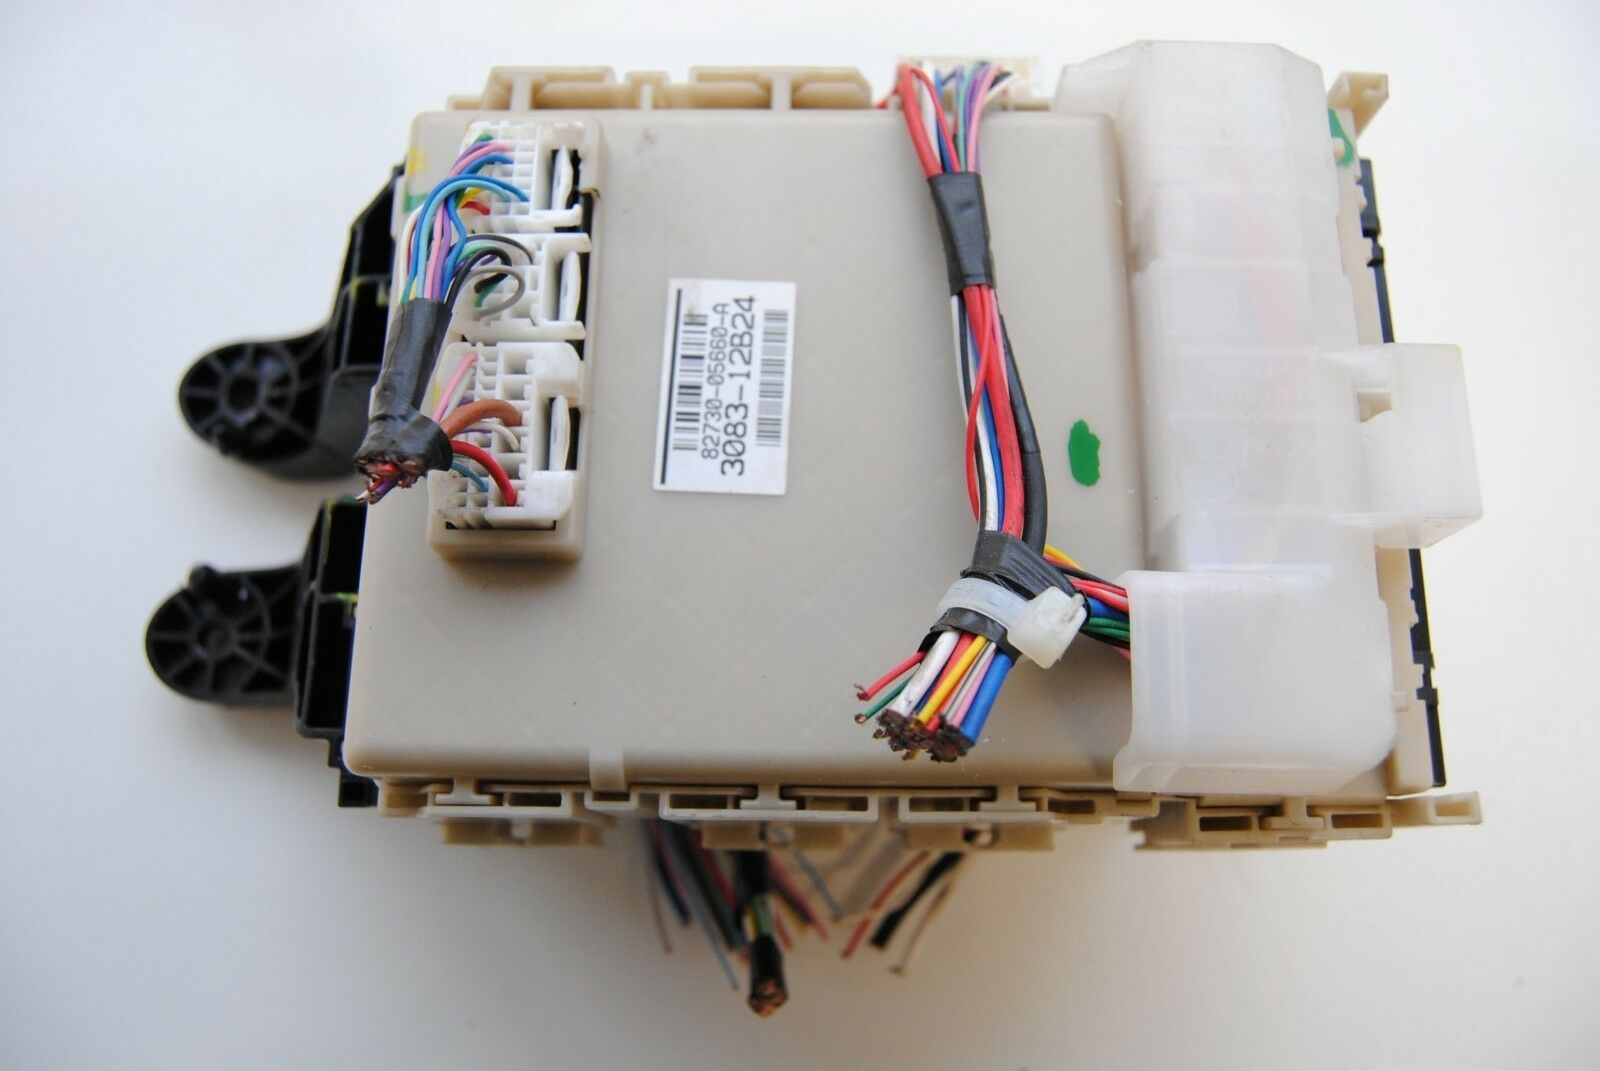 Toyota Avensis 20 D 4d 2012 Lhd Fuse Box With Reays 82730 05660 In 1 Of 5 2